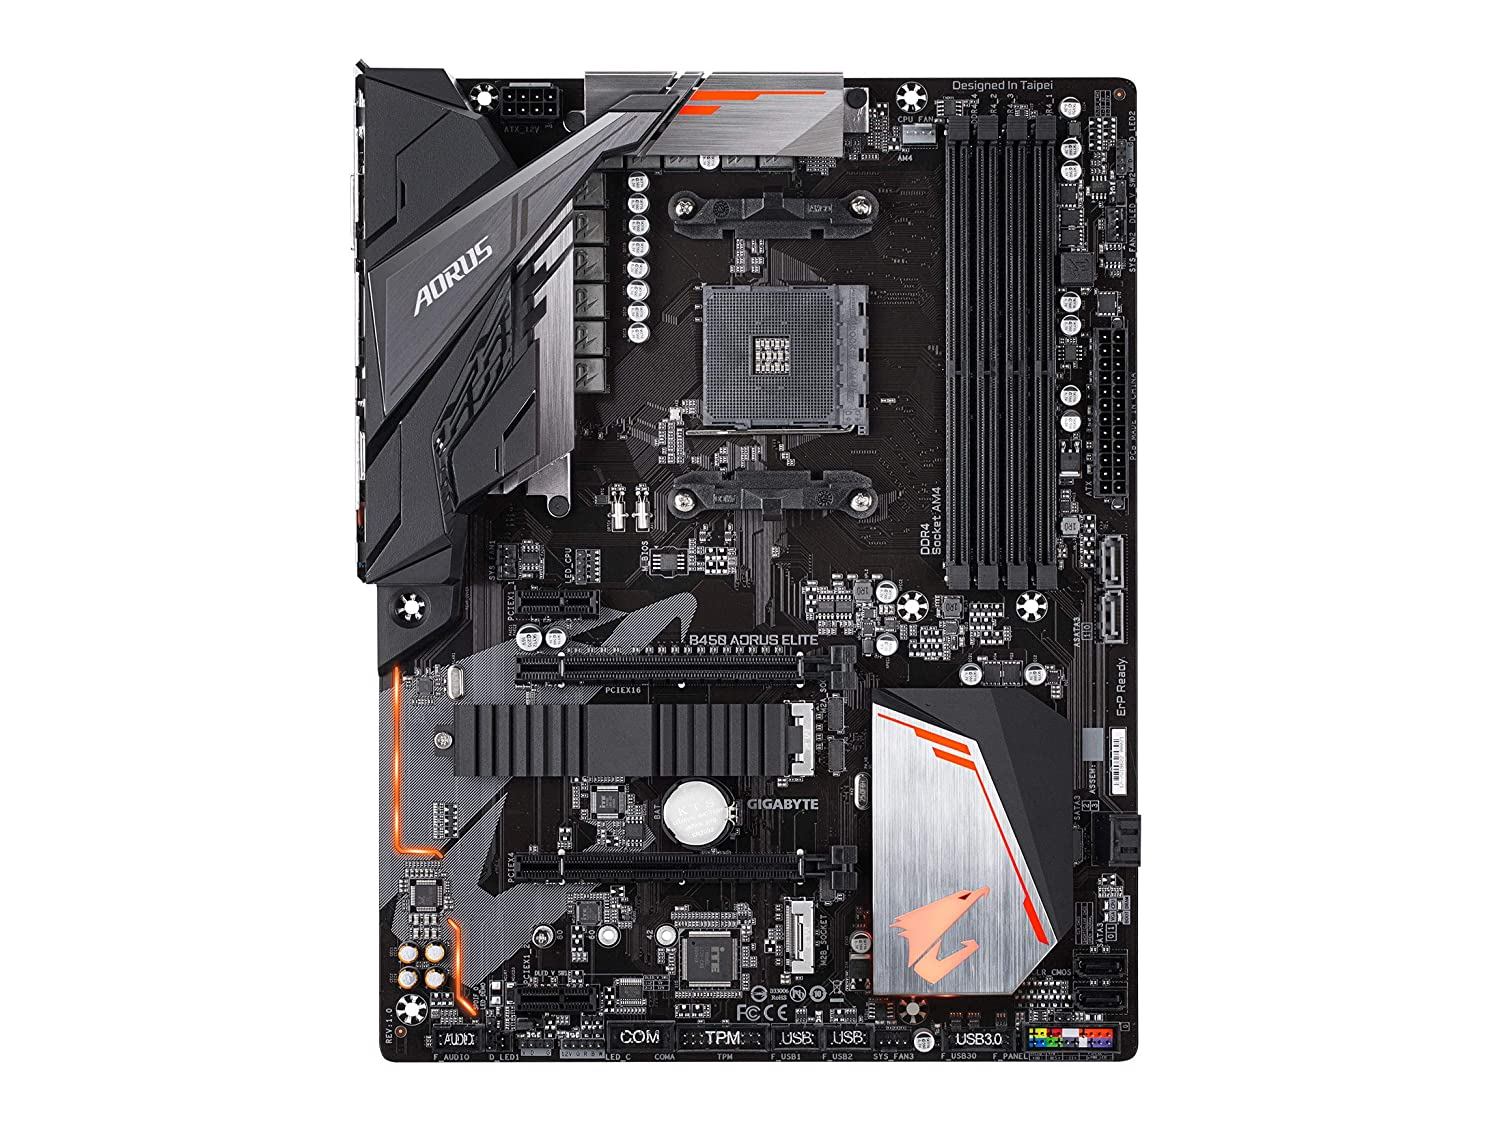 The Best B450 Motherboards 2019 For Gaming and Productivity Purposes